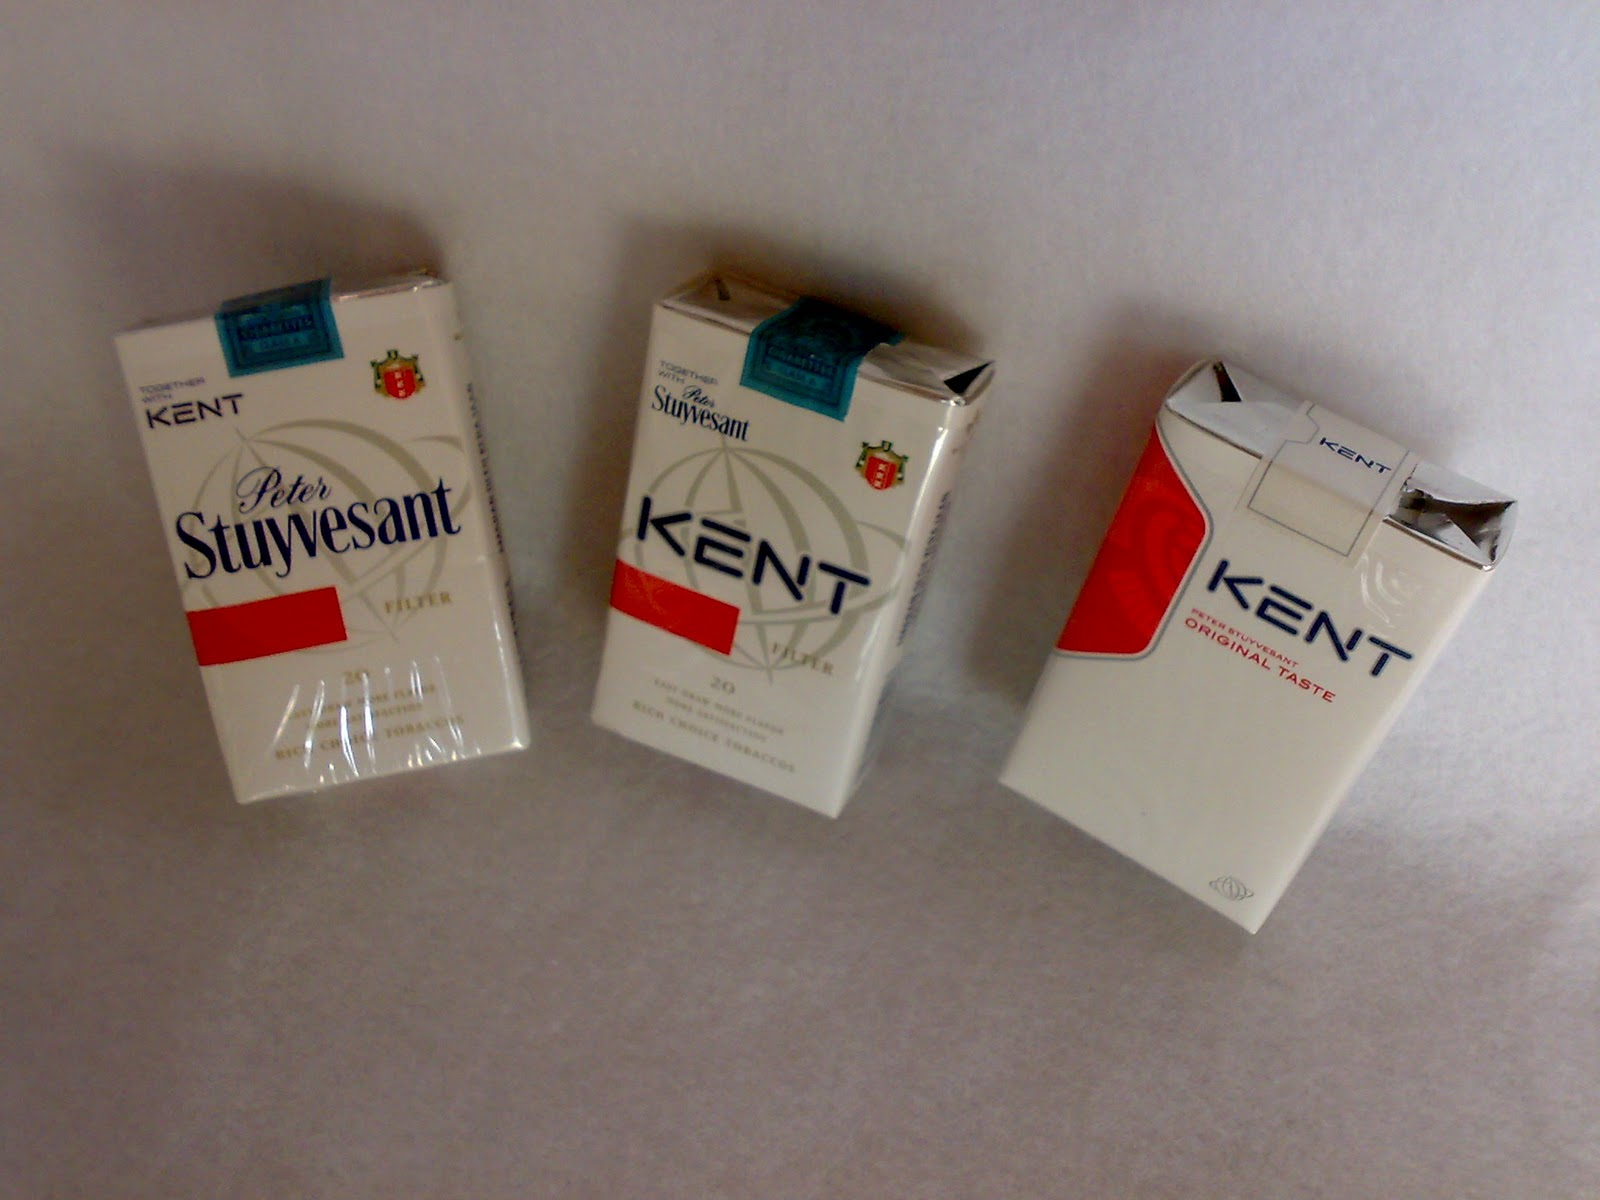 Pall Mall menthol light cigarettes Pall Mall